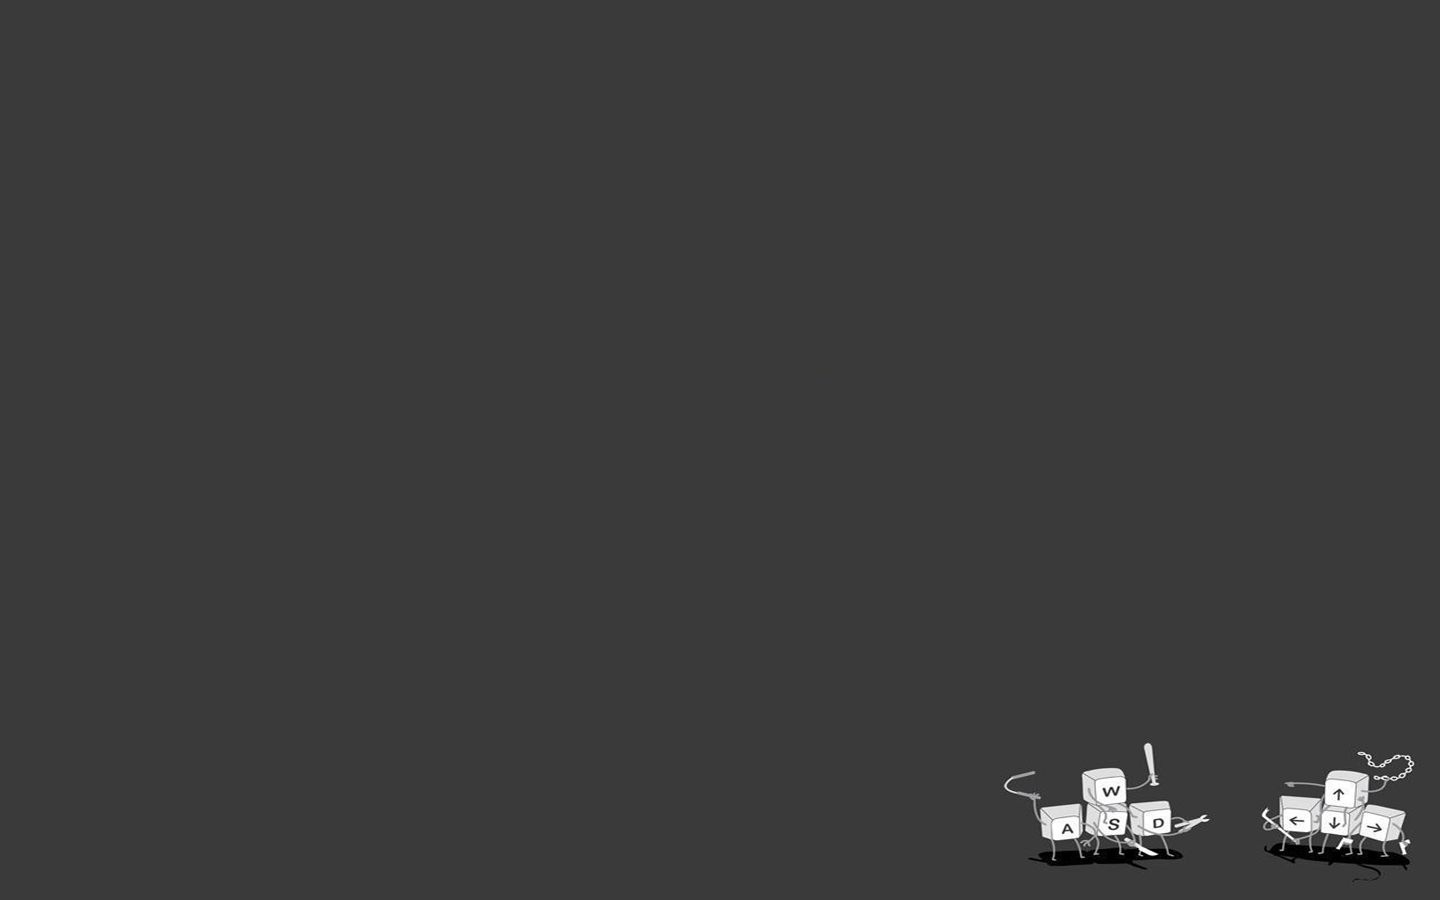 List Nation Wallpapers 33 Minimalist Funny Wallpapers 1440x900